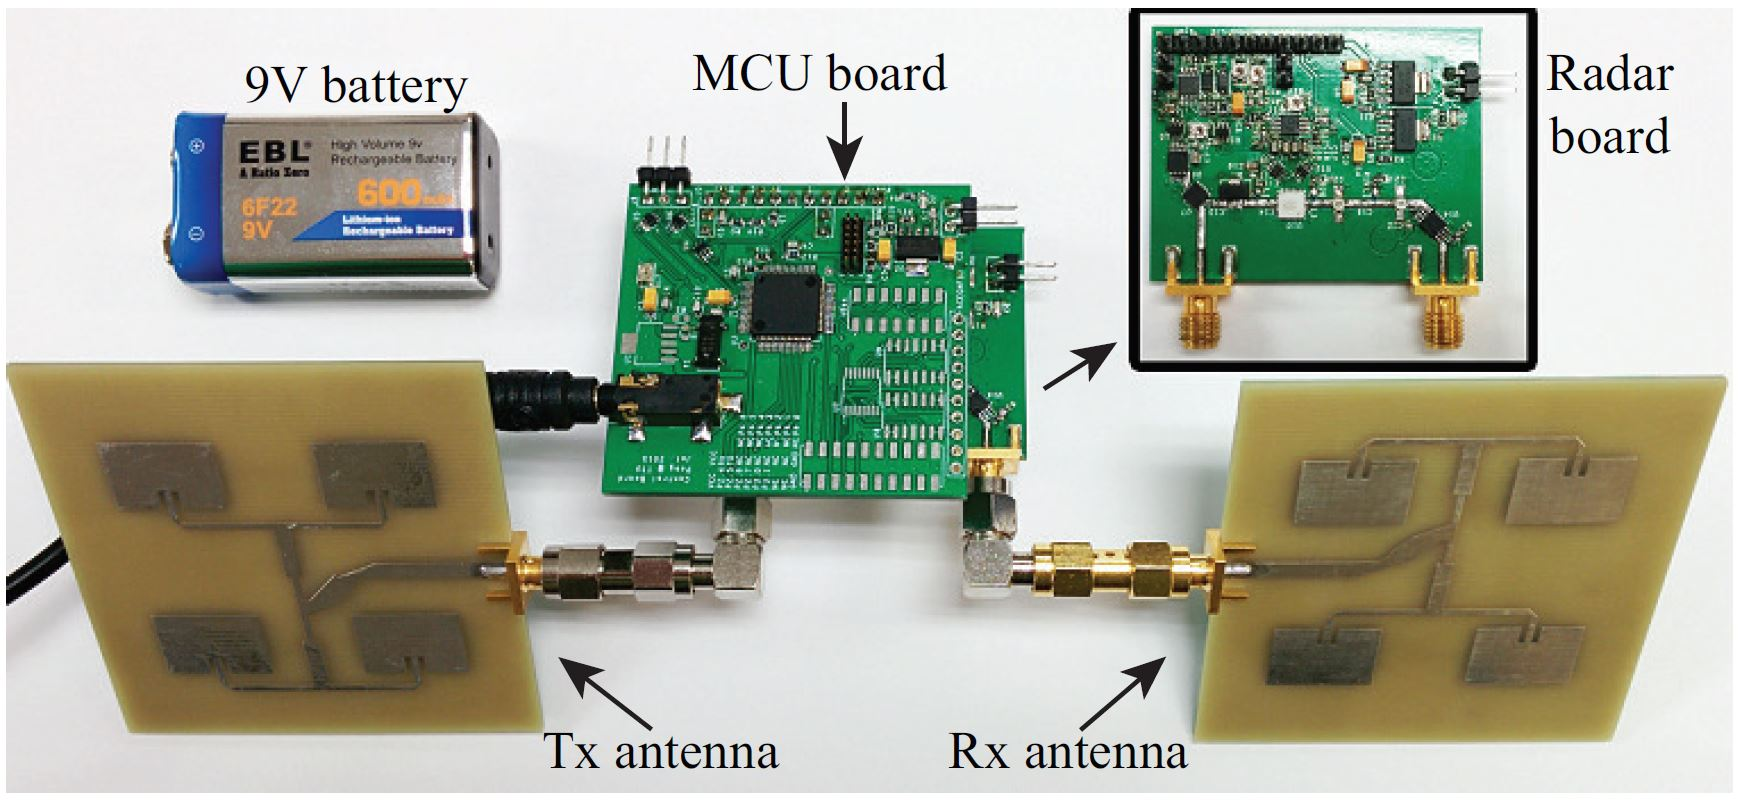 Fig. 2. Photo of the 5.8-GHz multi-mode radar prototype